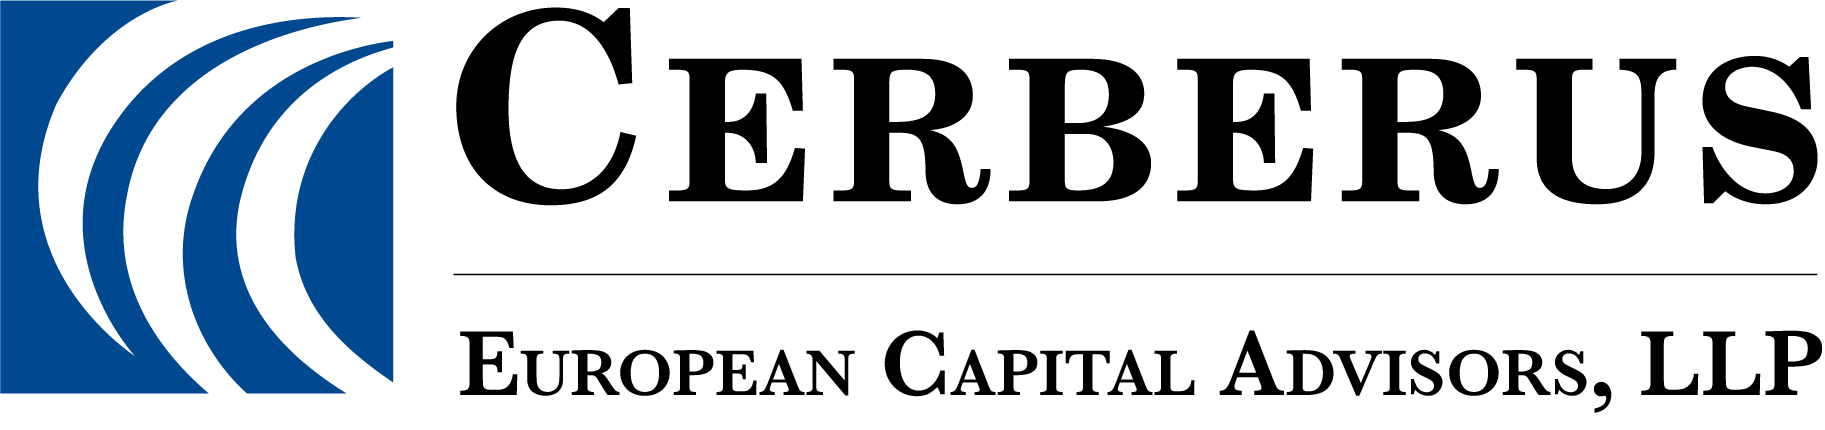 Хедж фонд - Cerberus Capital Management